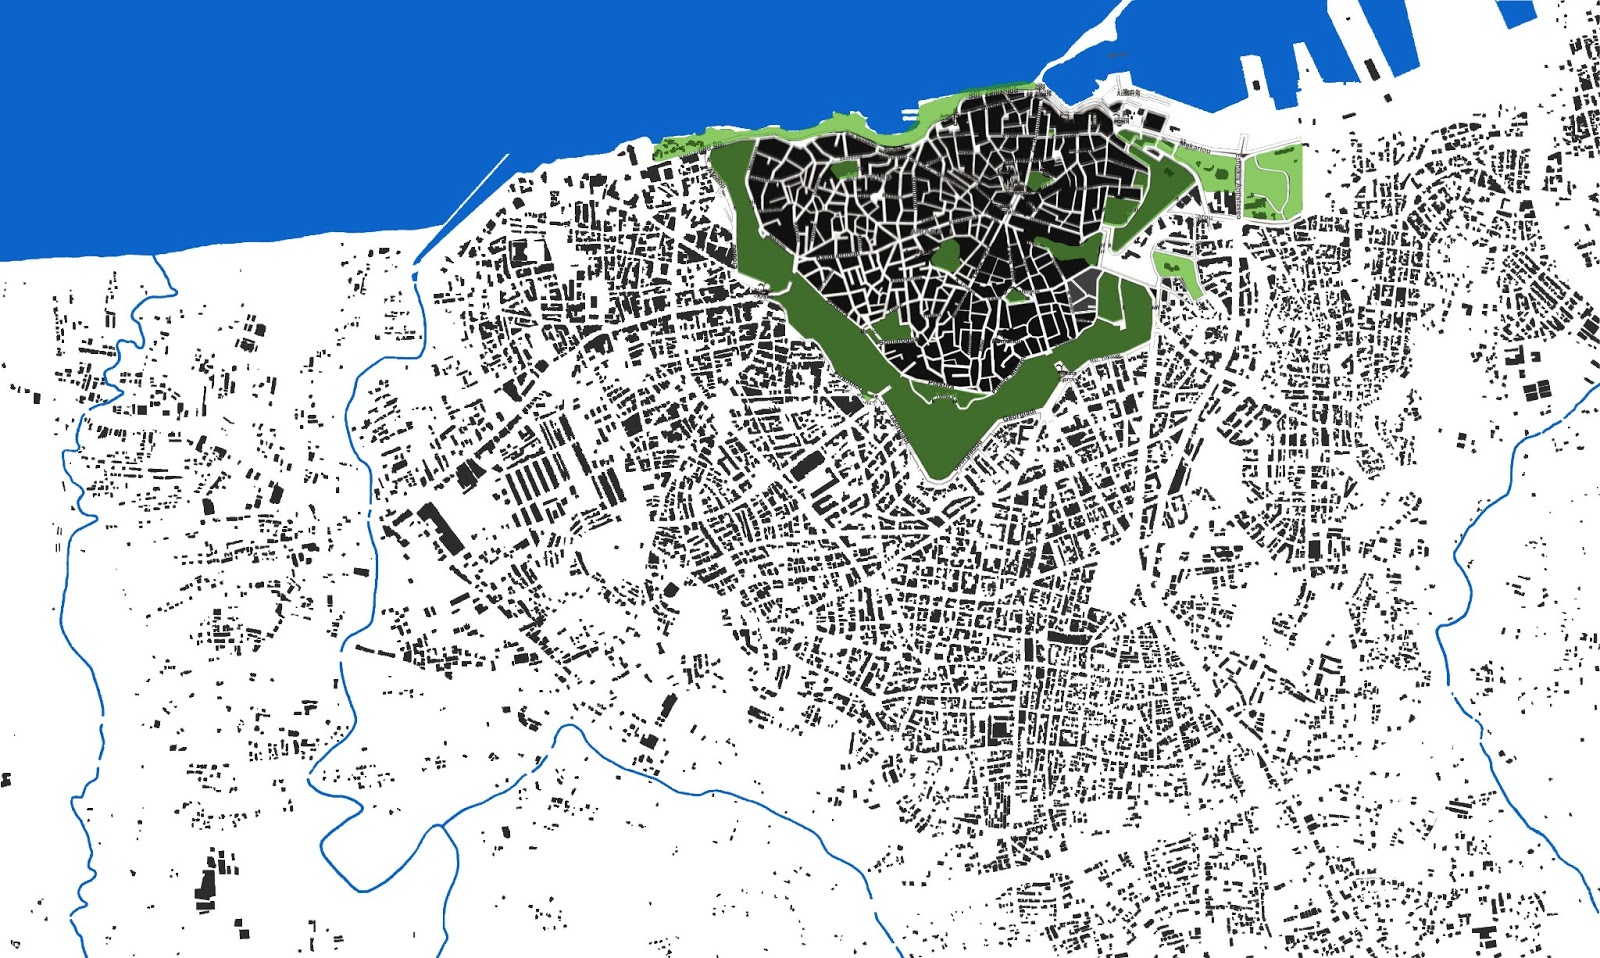 i used miro s figure ground map as a base in illustrator to highlight the water and green spaces of the city i noticed most of the green spaces follow the